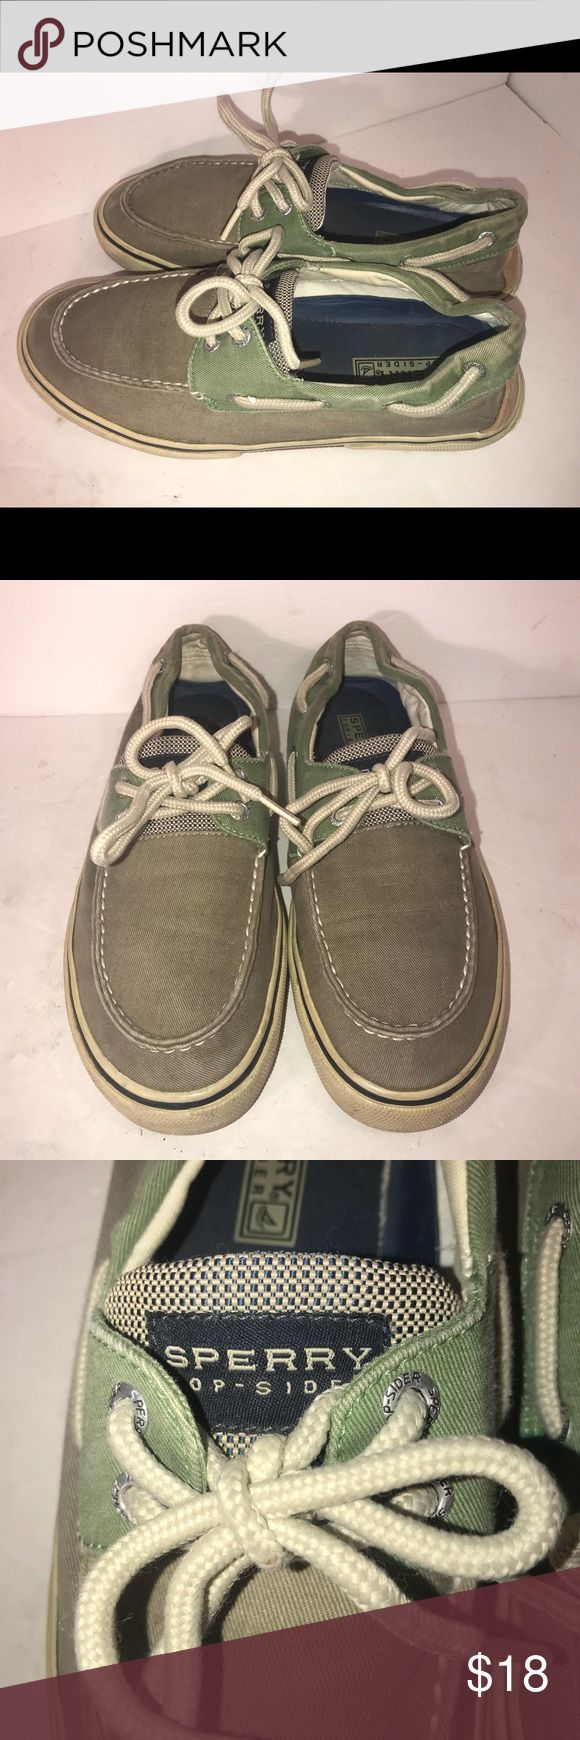 Sperry Top-Sider Sider Mens Khaki Green Sz 8M Sperry Top-Sider Sider Mens Khaki Olive Green Canvas Boat Shoes Sz 8M Comfy  Comes from smoke free pet free home  Ks2 Sperry Top-Sider Shoes Loafers & Slip-Ons